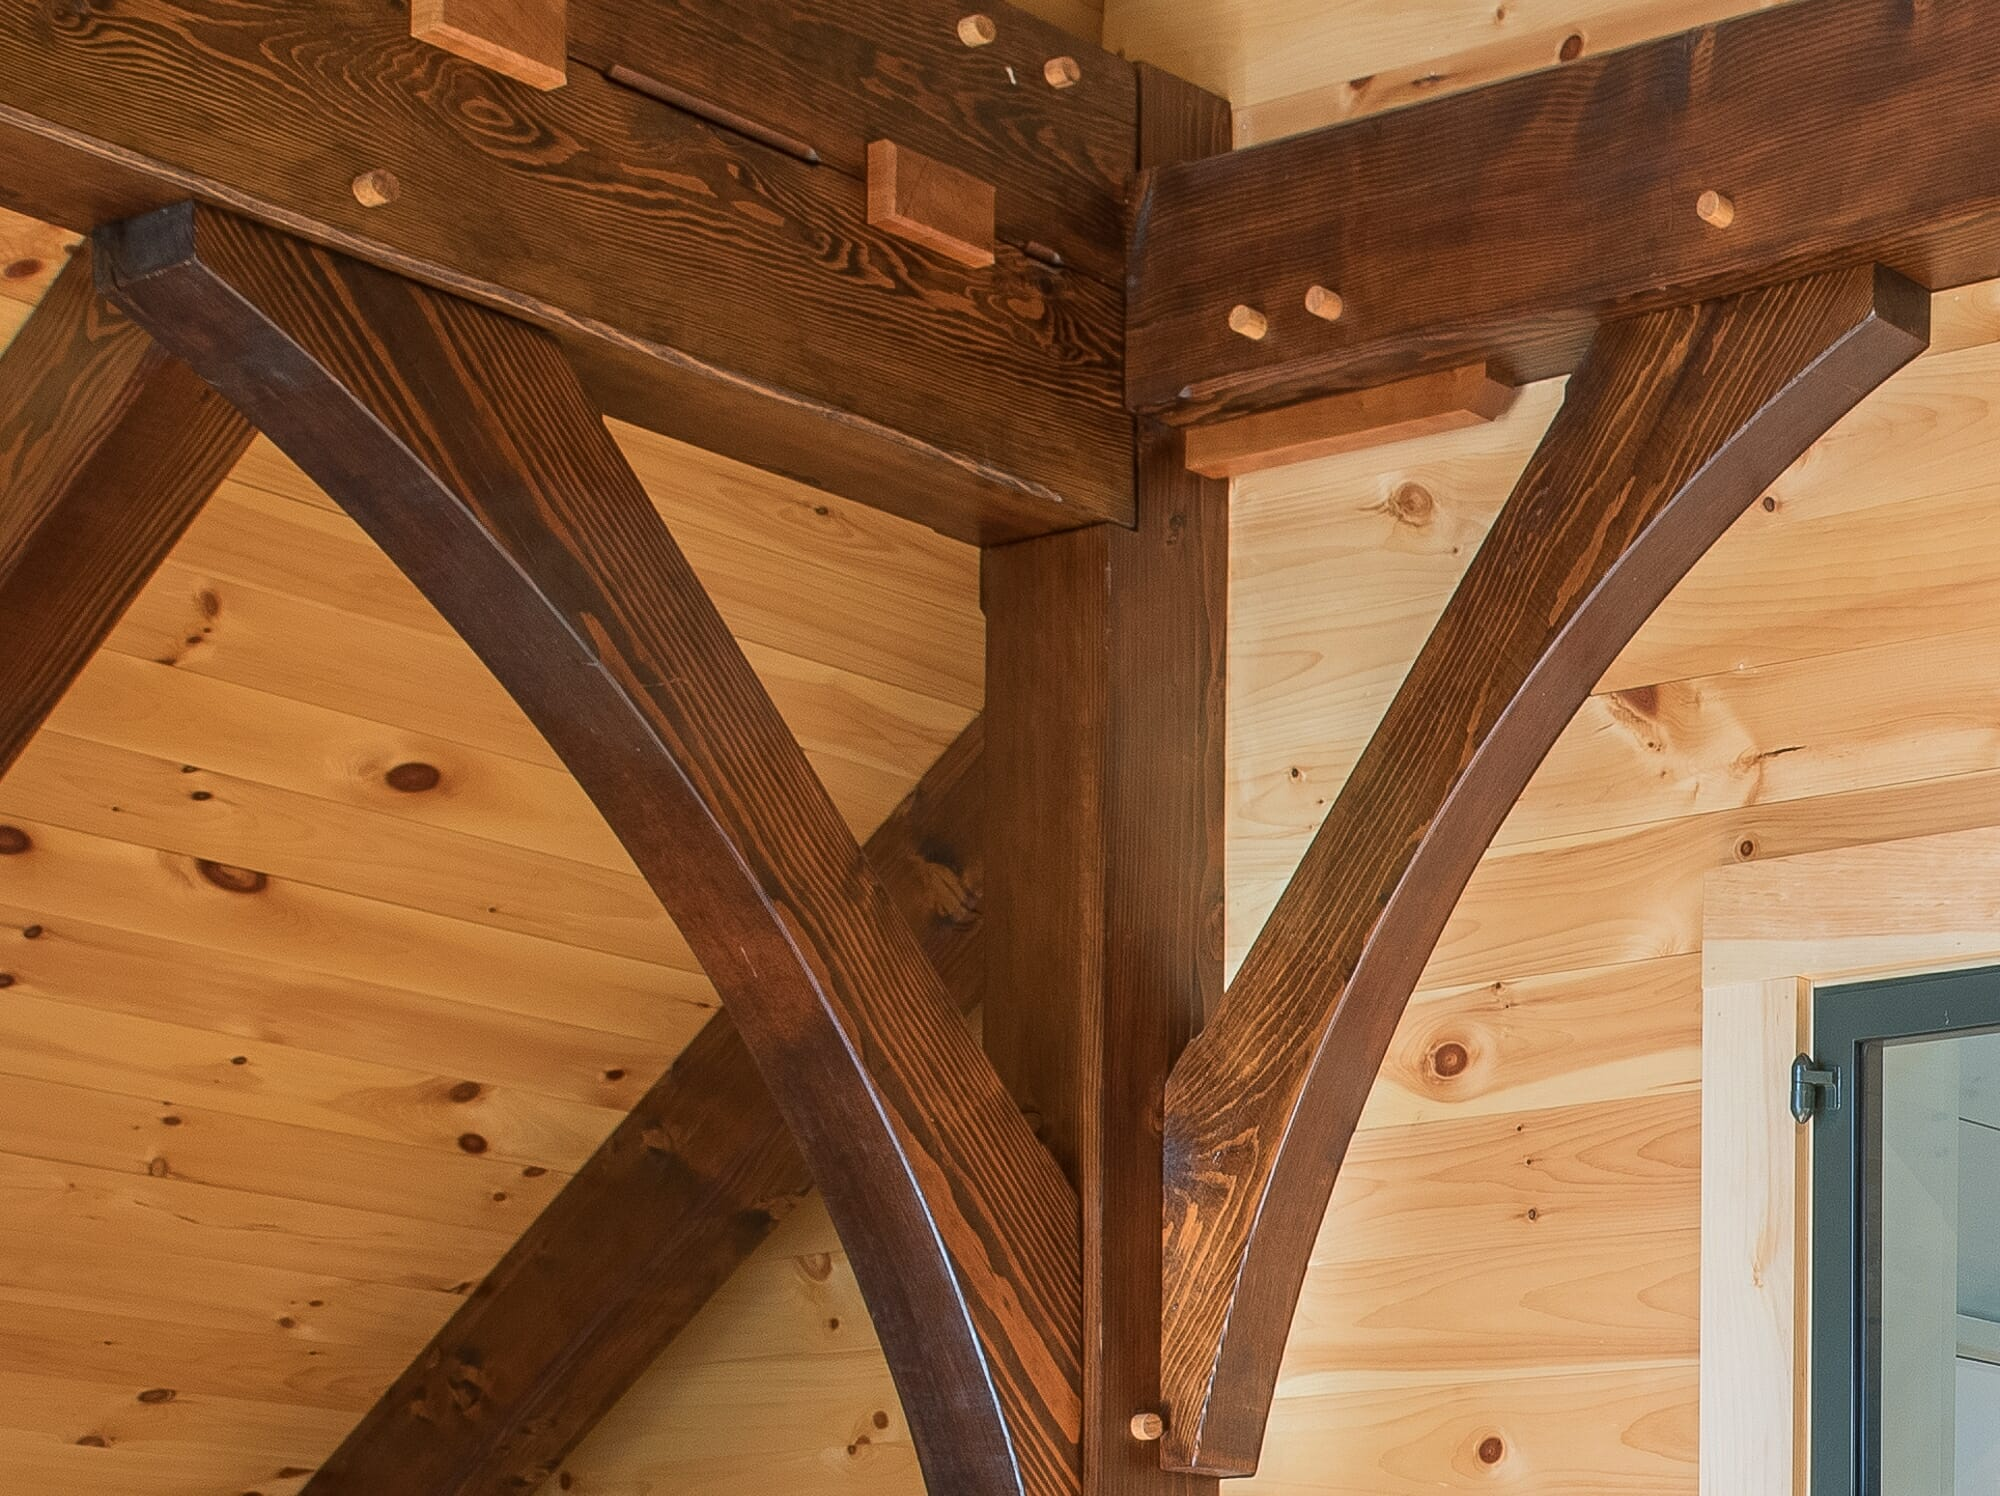 Timber Frame Joinery with Pegs and Keys in Barn Style Home in NH